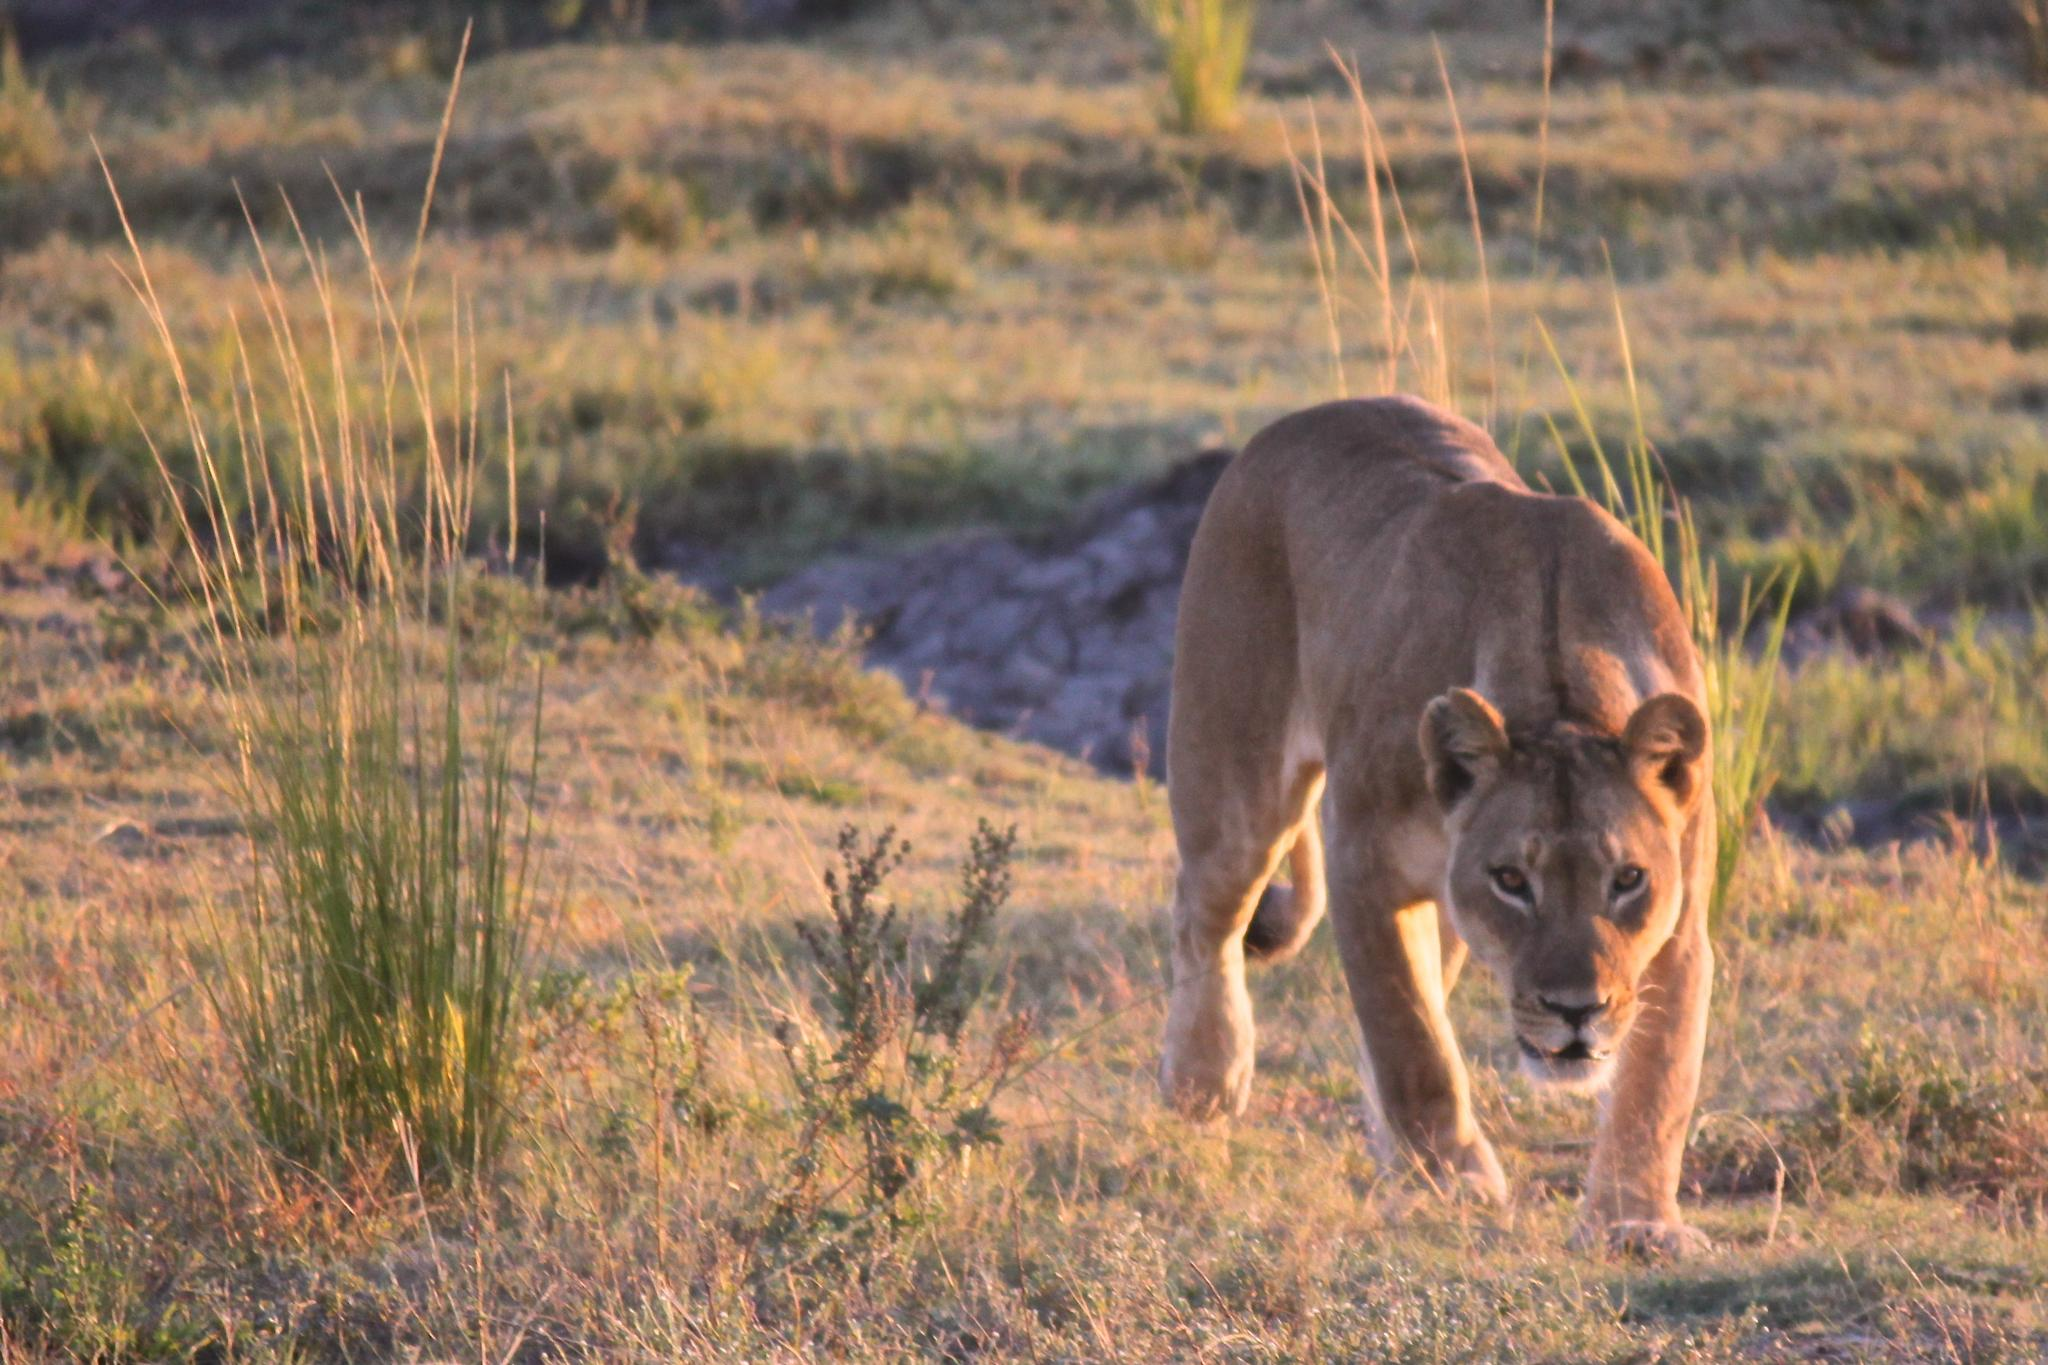 Lioness focusing on prey by patricia_collins